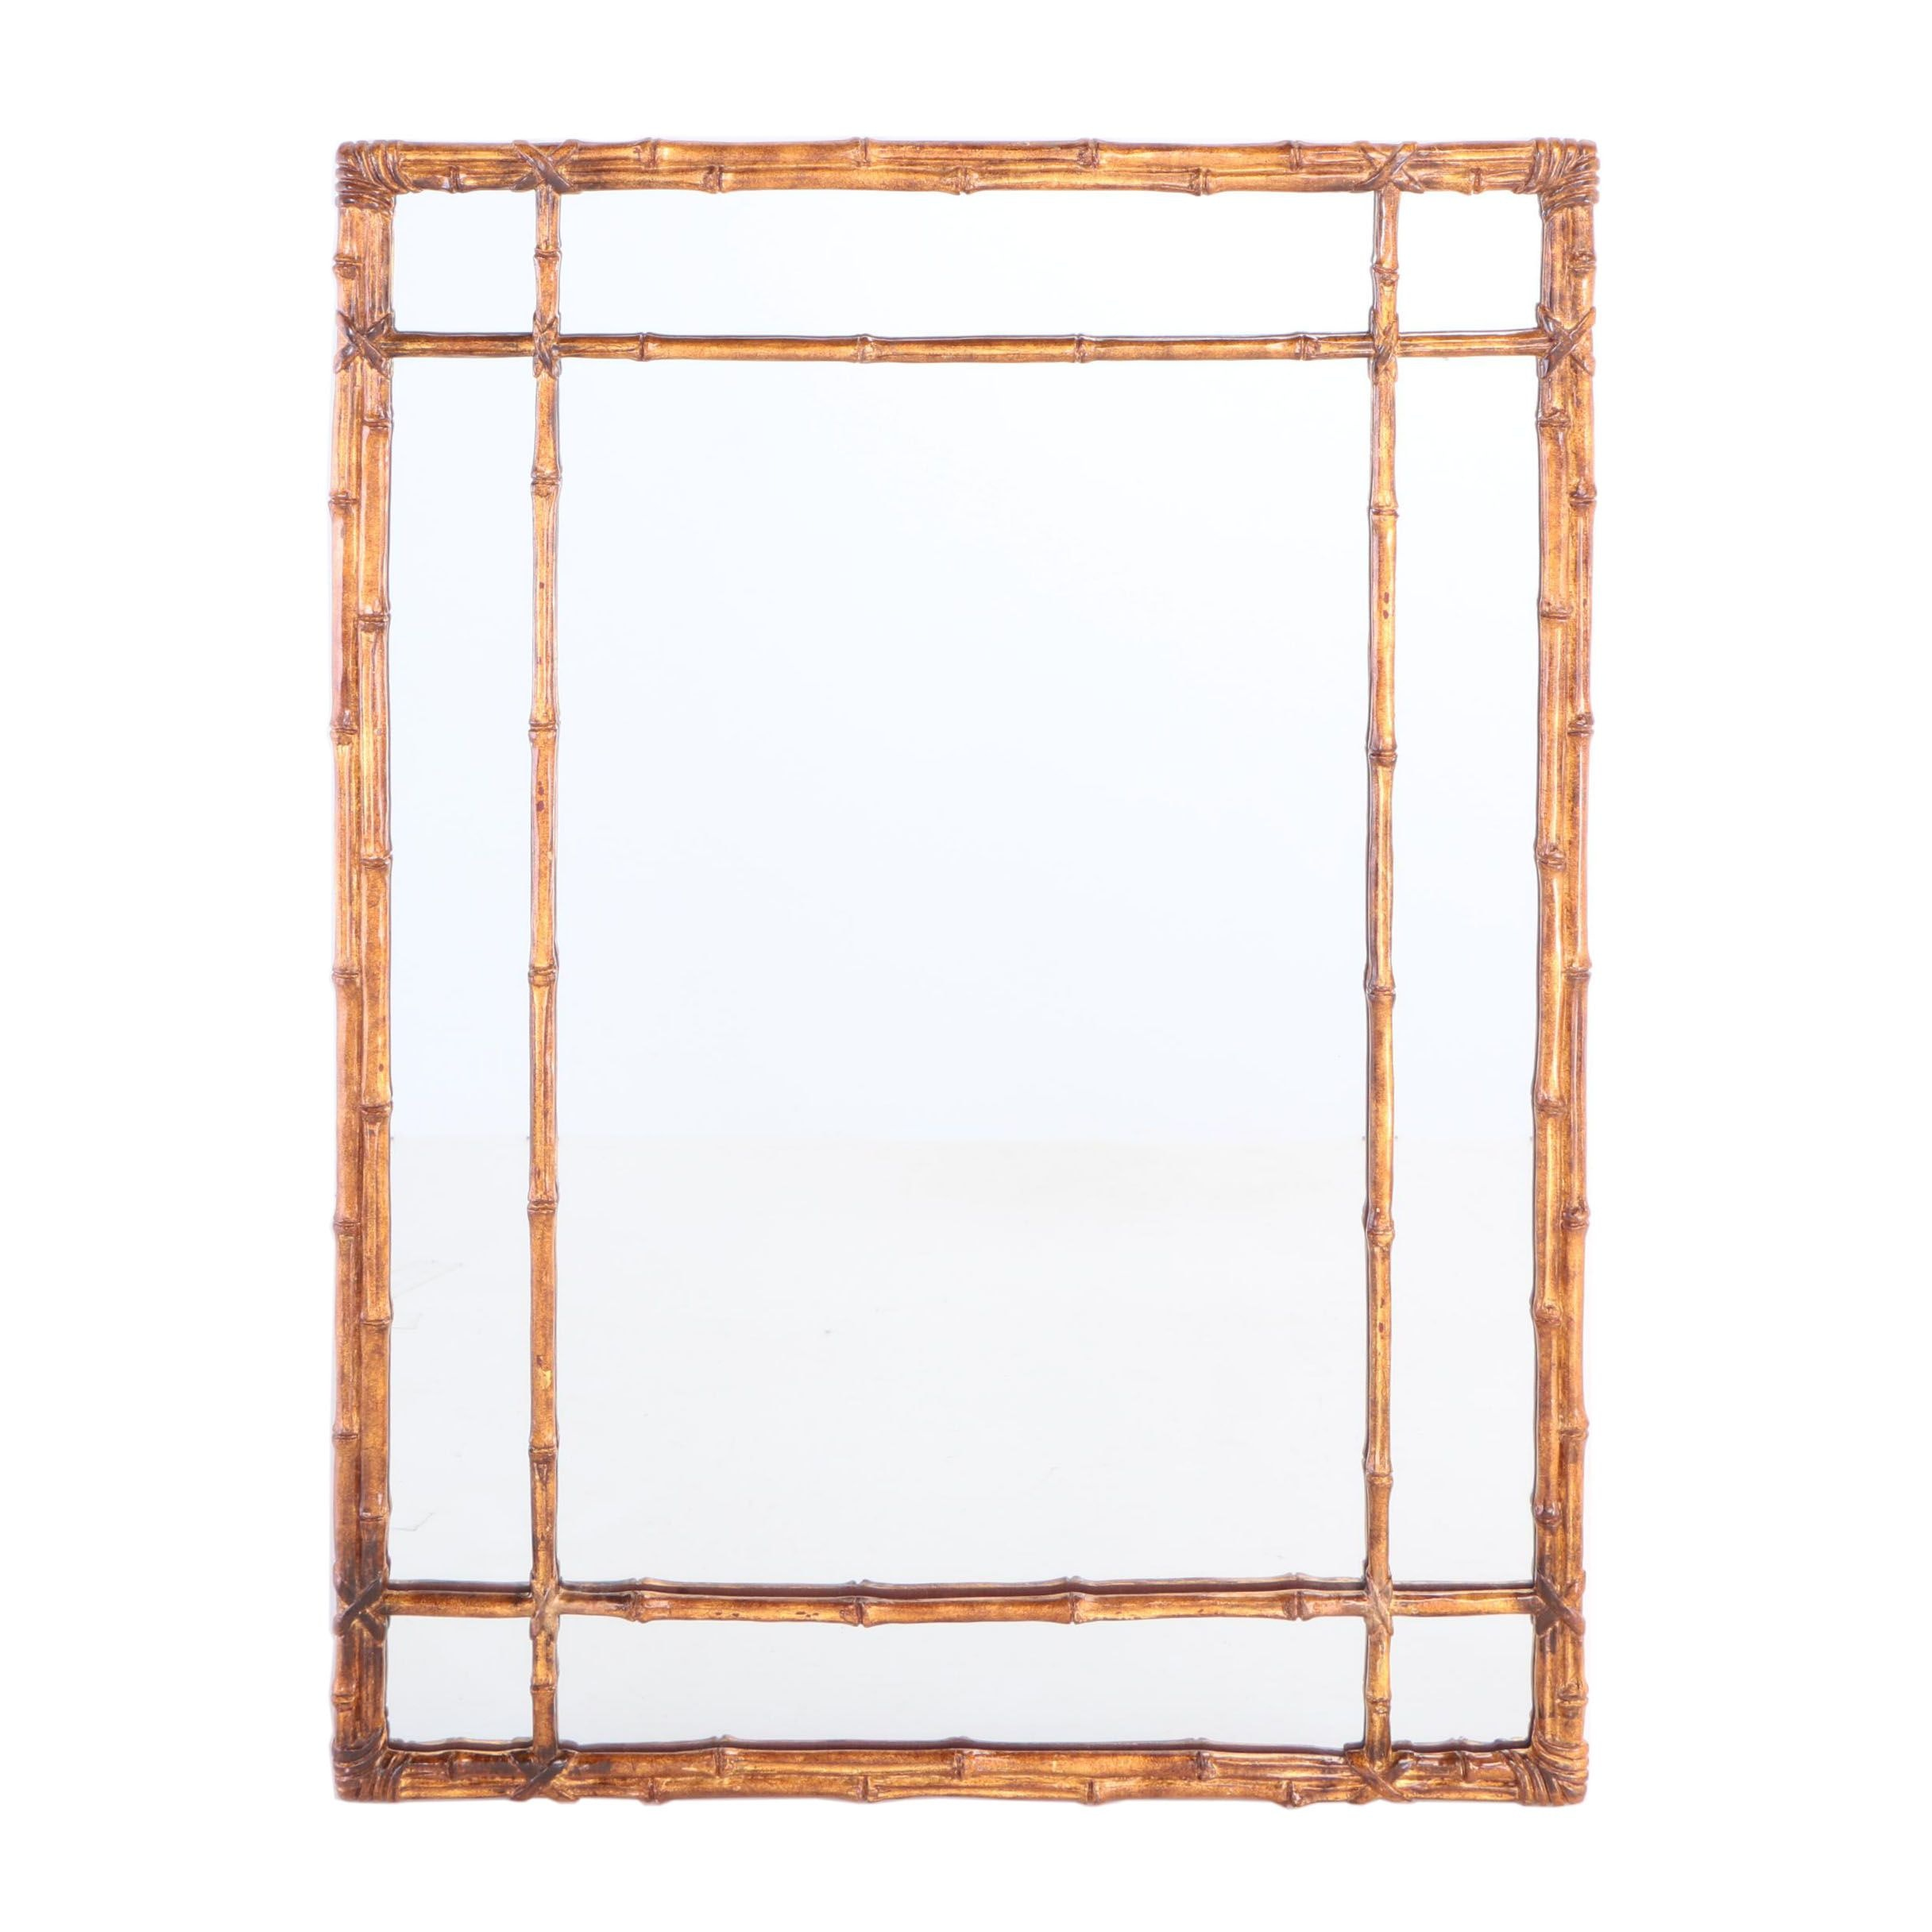 Gilt-Decorated Simulated Bamboo Mirror, 20th Century